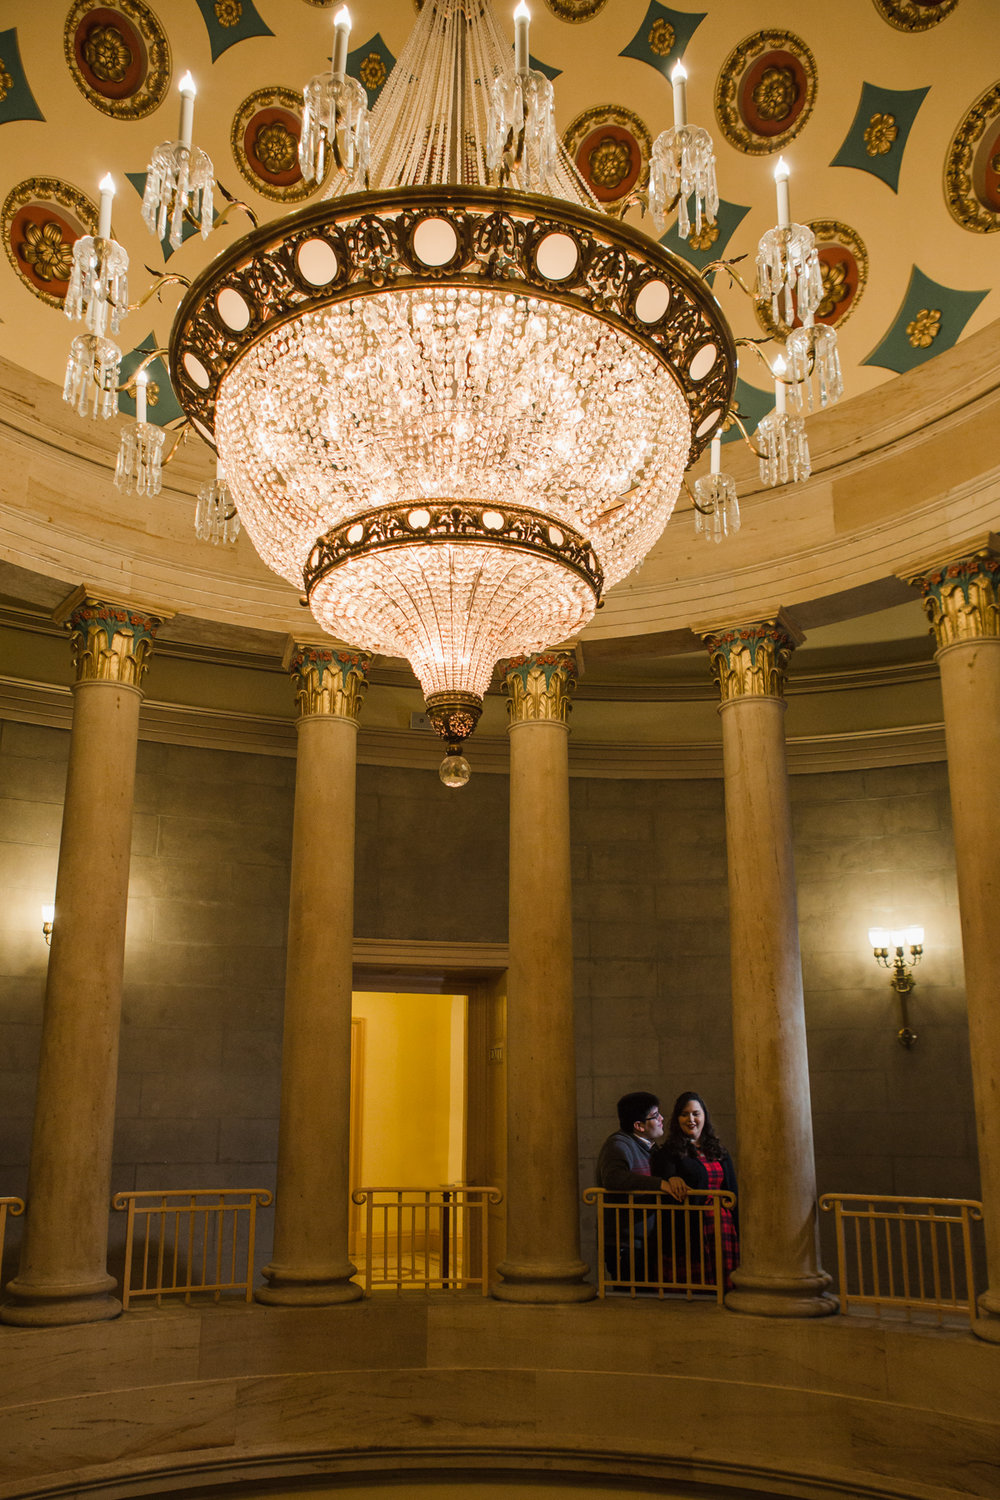 Small Senate Rotunda, US Capitol